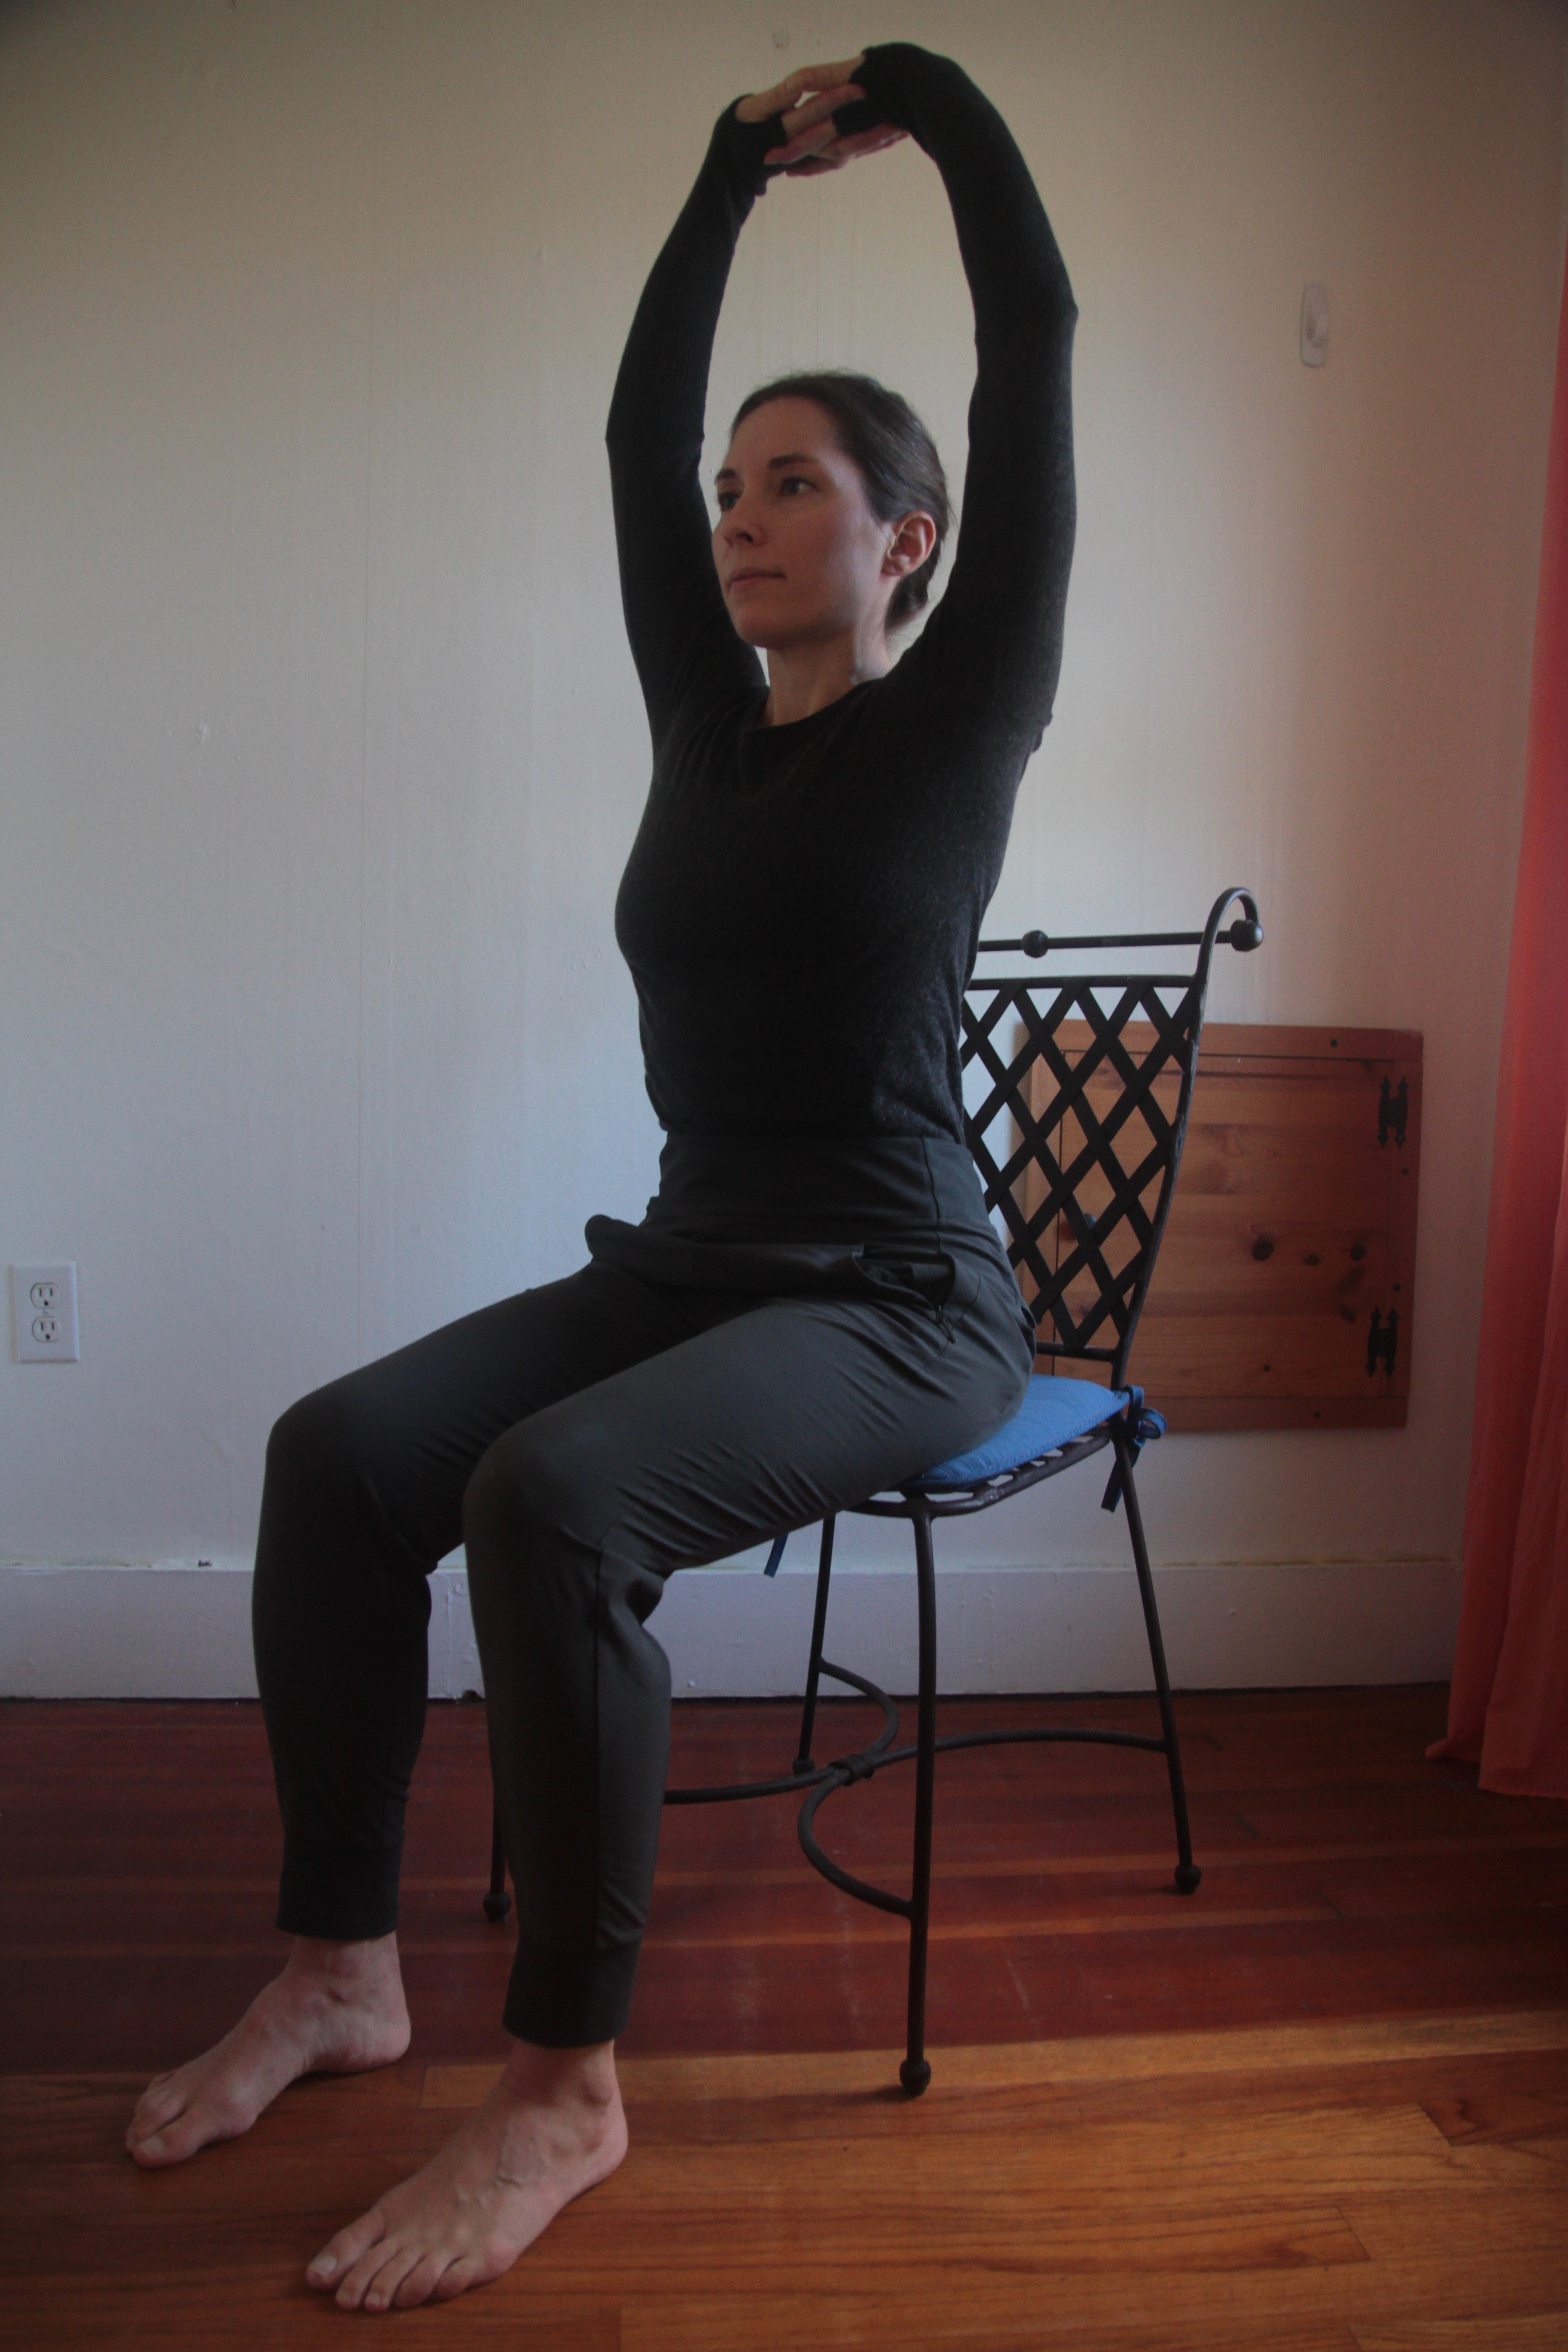 Shoulder shrugs, at your desk yoga, seated yoga, beginner's yoga, yoga at work, loosen tight muscles